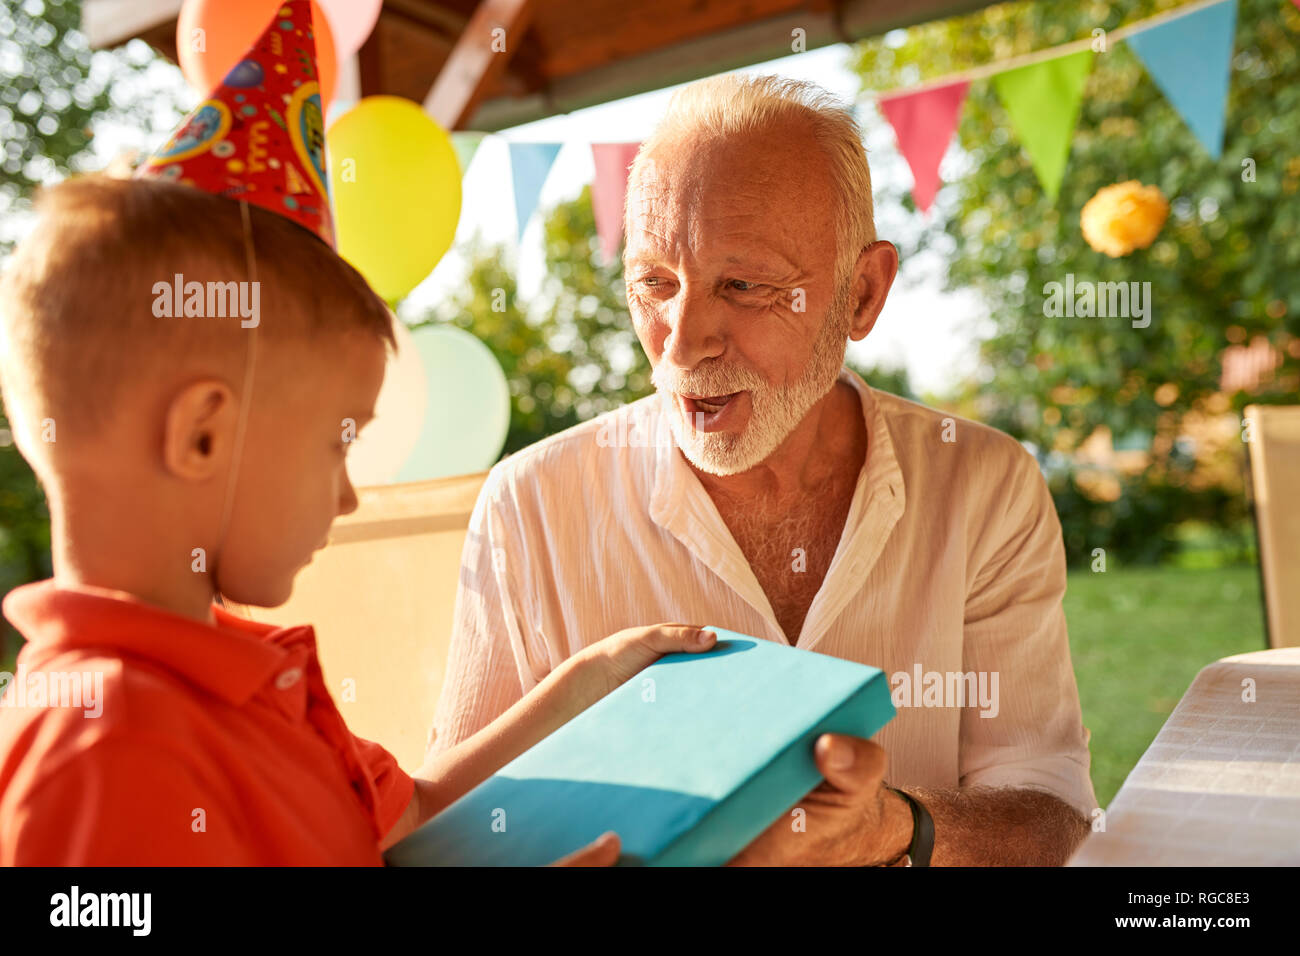 Grandfather handing over present to grandson on a garden birthday party Stock Photo